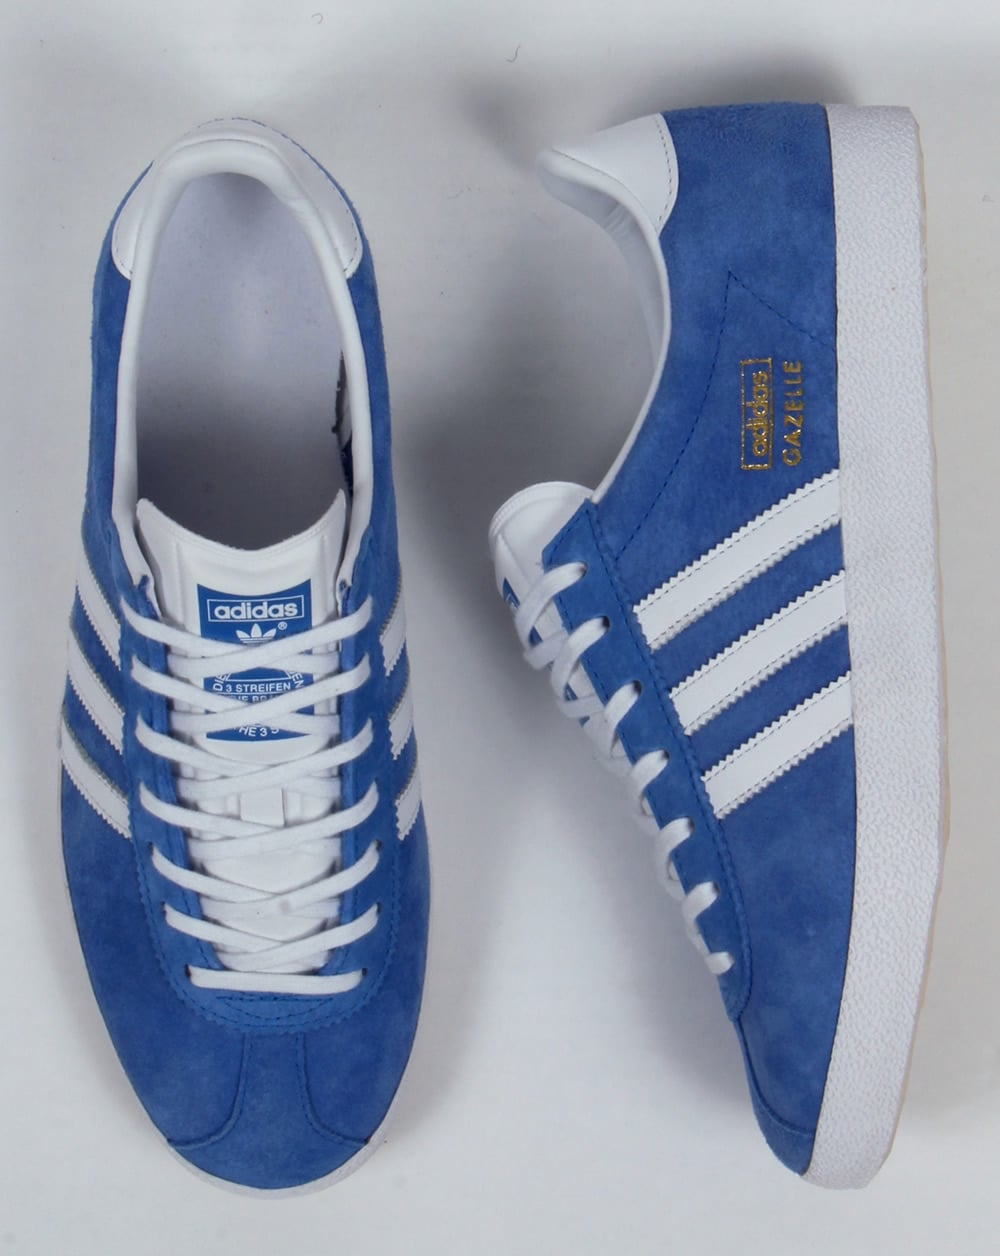 brand new classic quite nice Adidas Gazelle OG Trainers Airforce Blue/white